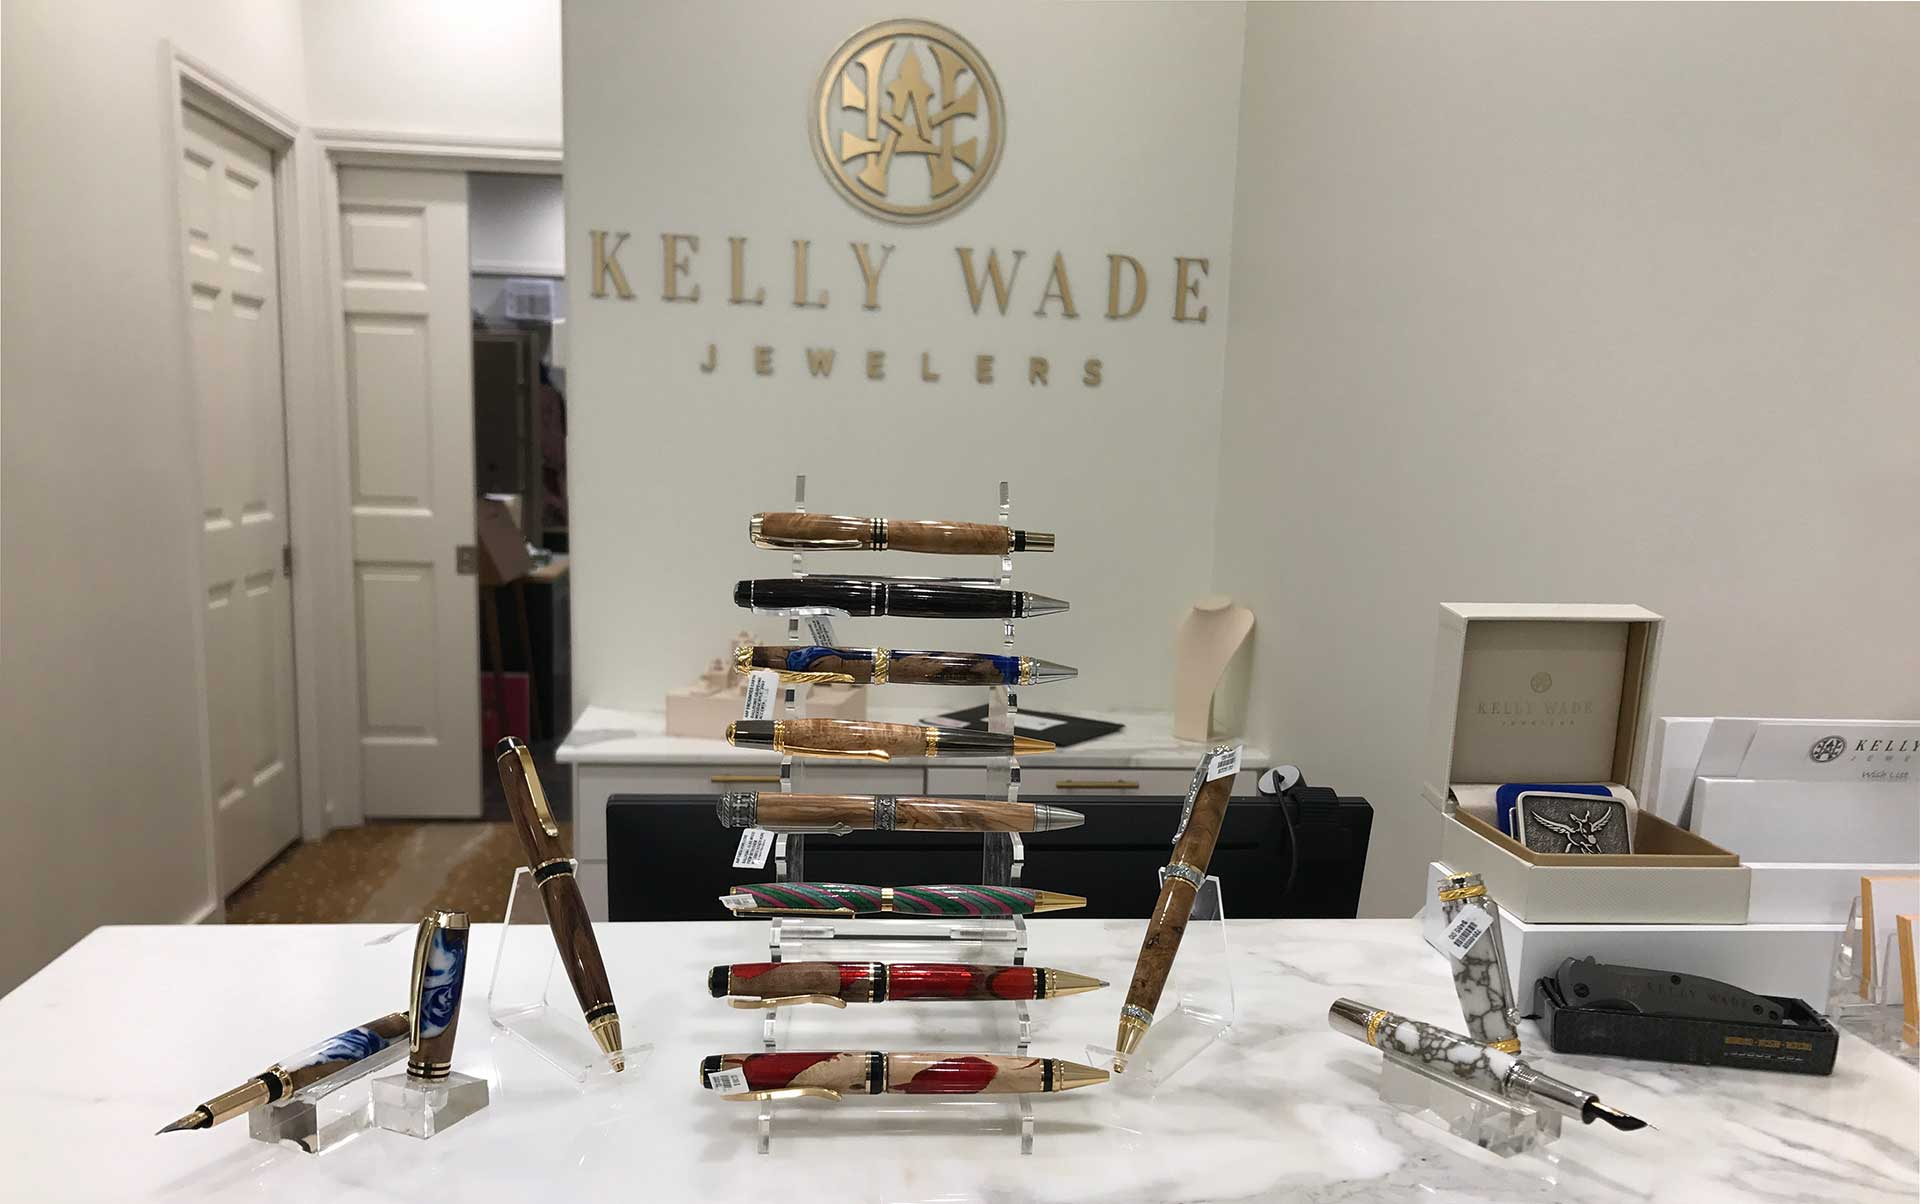 Kelly Wade Jeweler display of Andrew's Artisan Pens